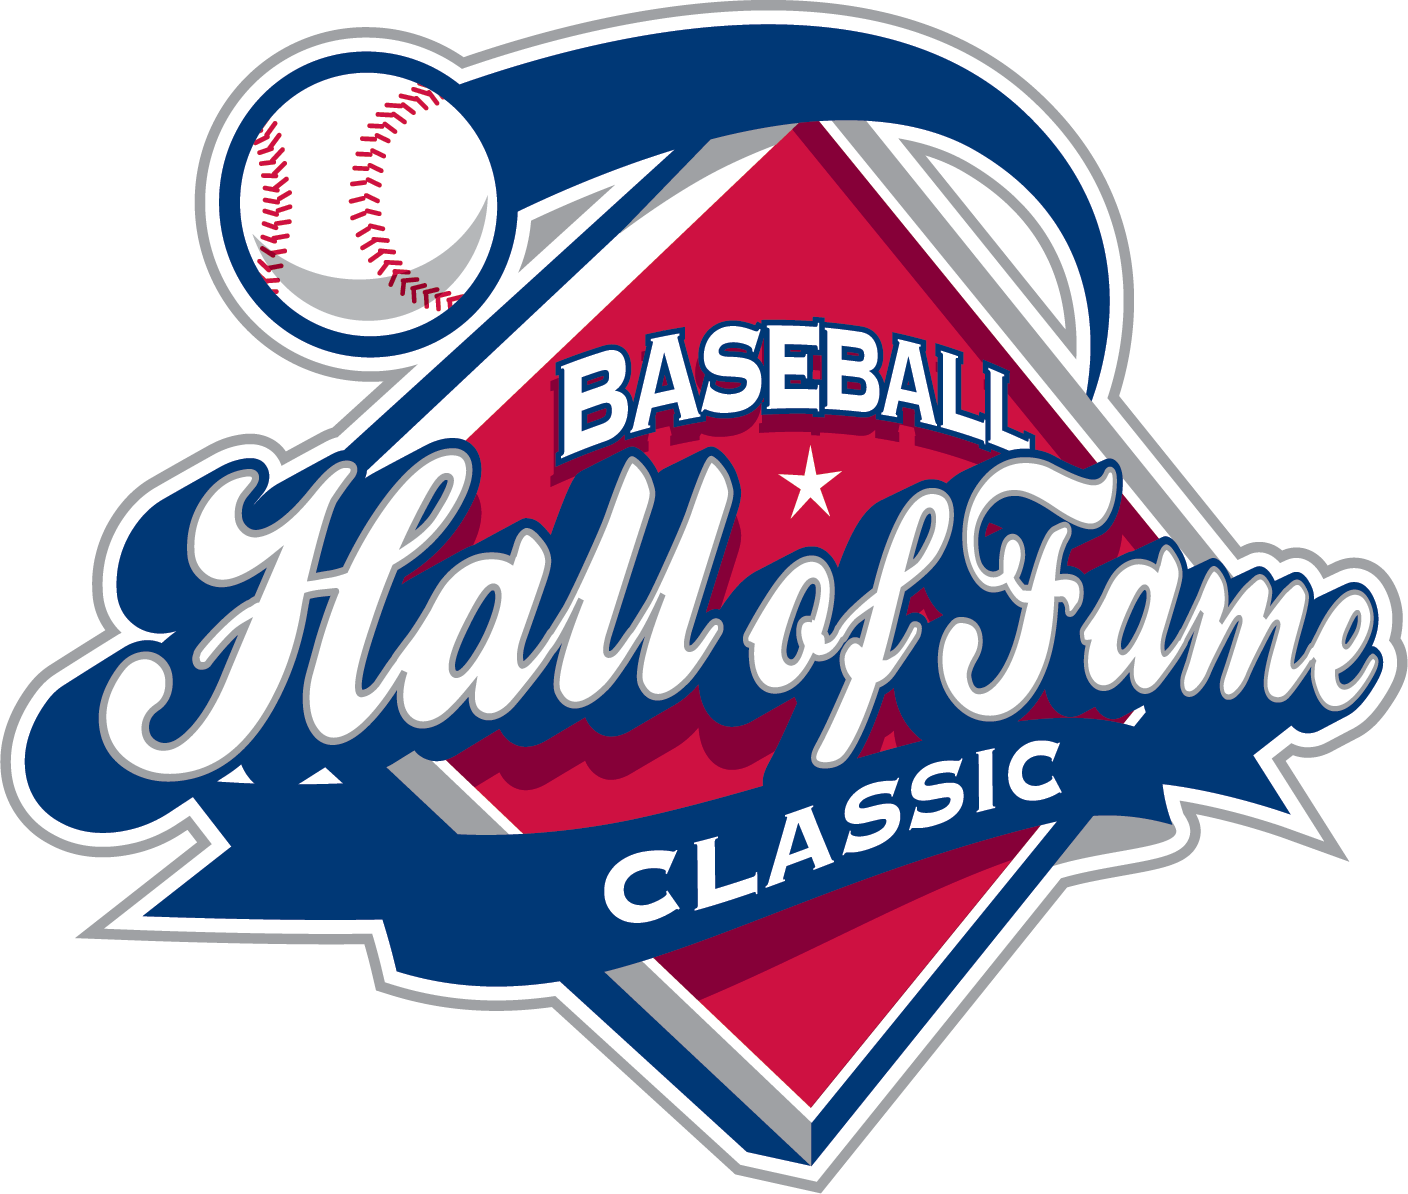 Baseball day clipart svg royalty free library 2016 HOF Classic Features Baseball's Biggest Stars in Memorial Day ... svg royalty free library